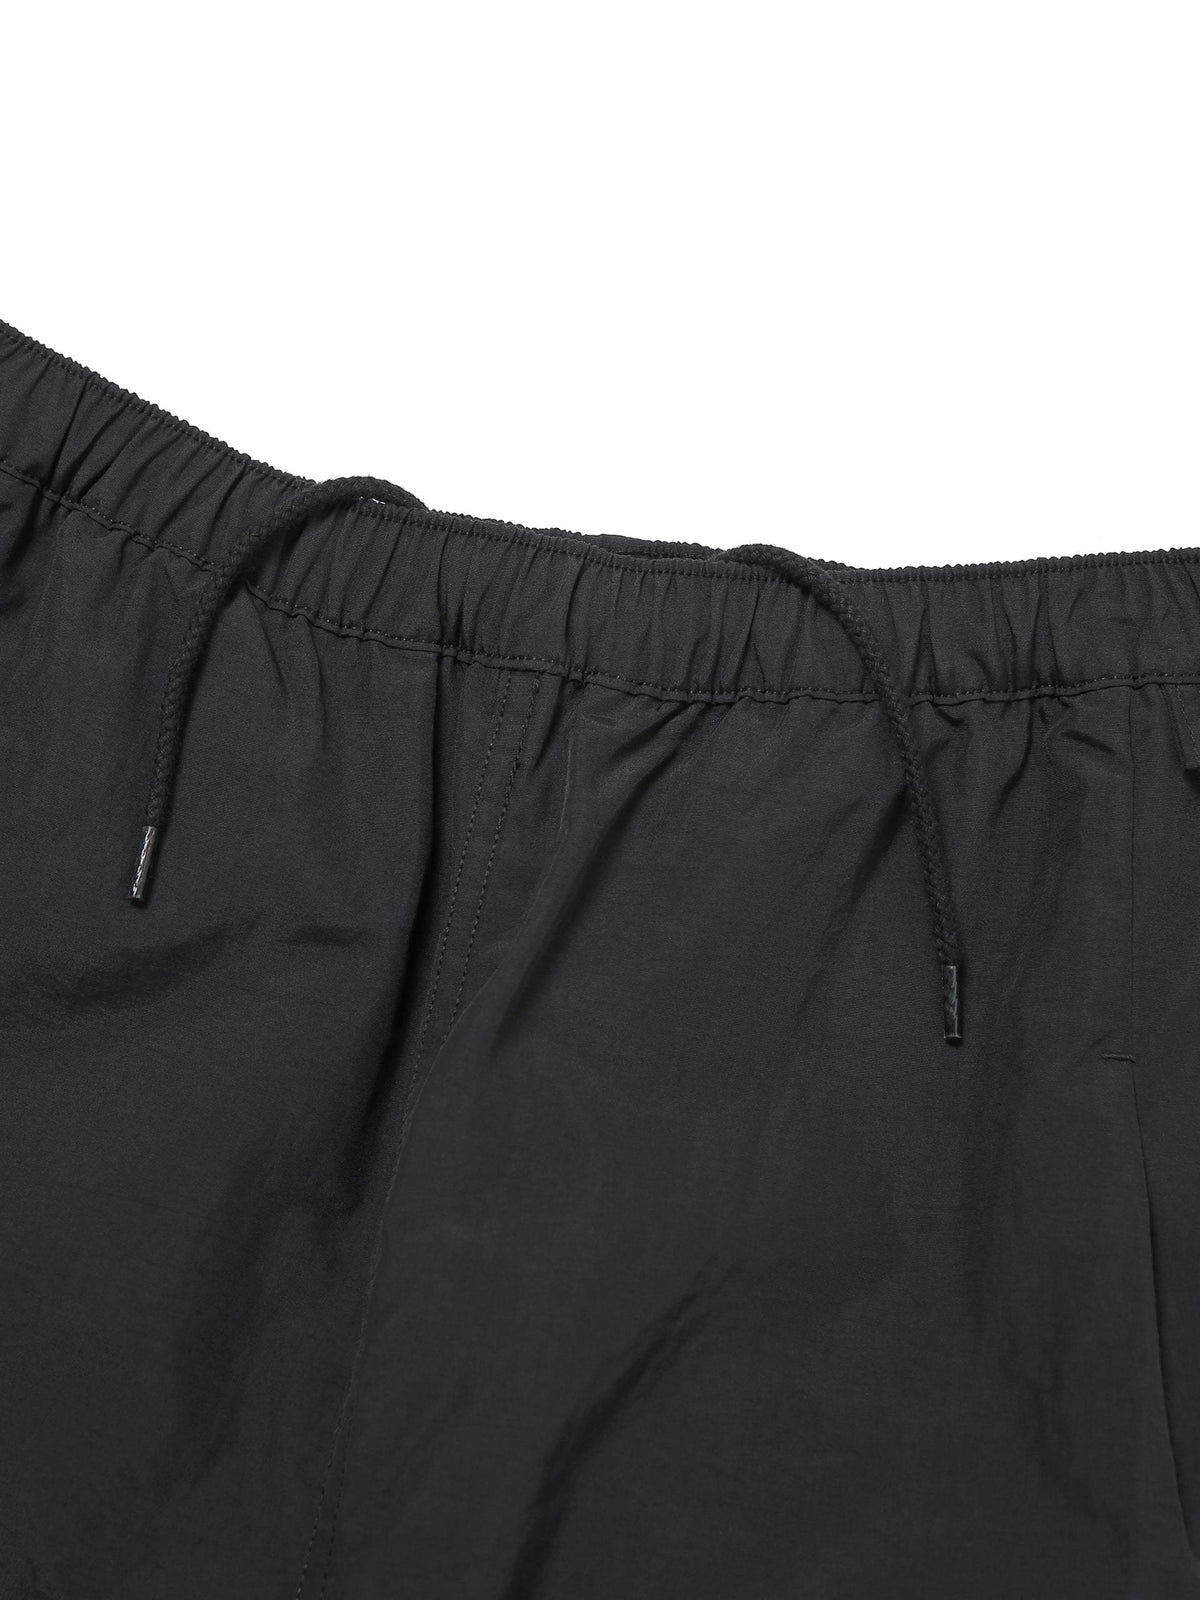 Jogging Short Pants